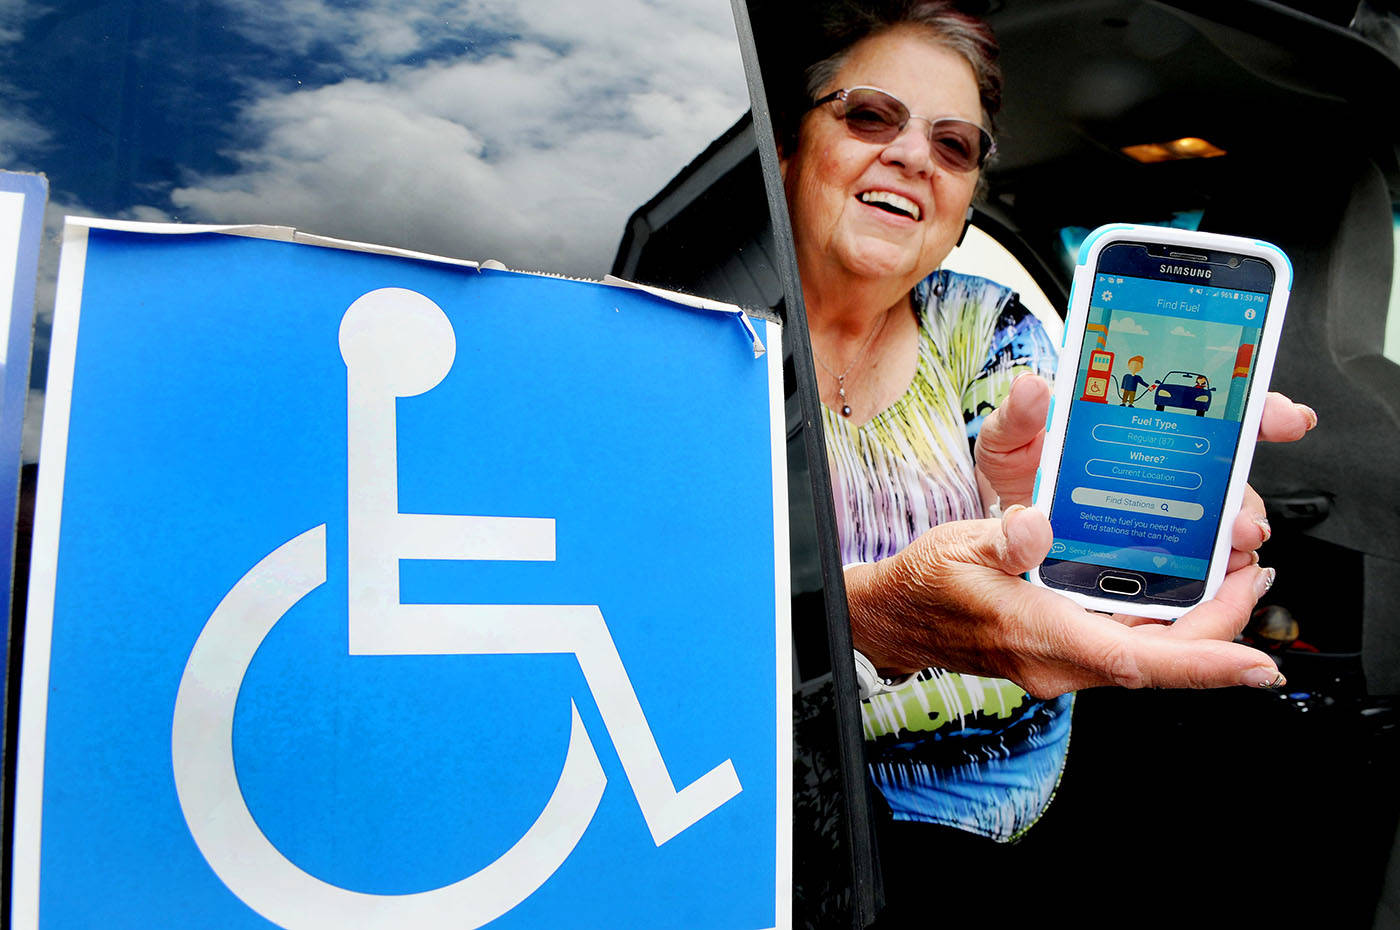 Langley Pos-Abilities Society founder Zosia Ettenberg showed an app, released exlusively in Langley, that helps disabled drivers get fuel in their cars. Troy Landreville Langley Times